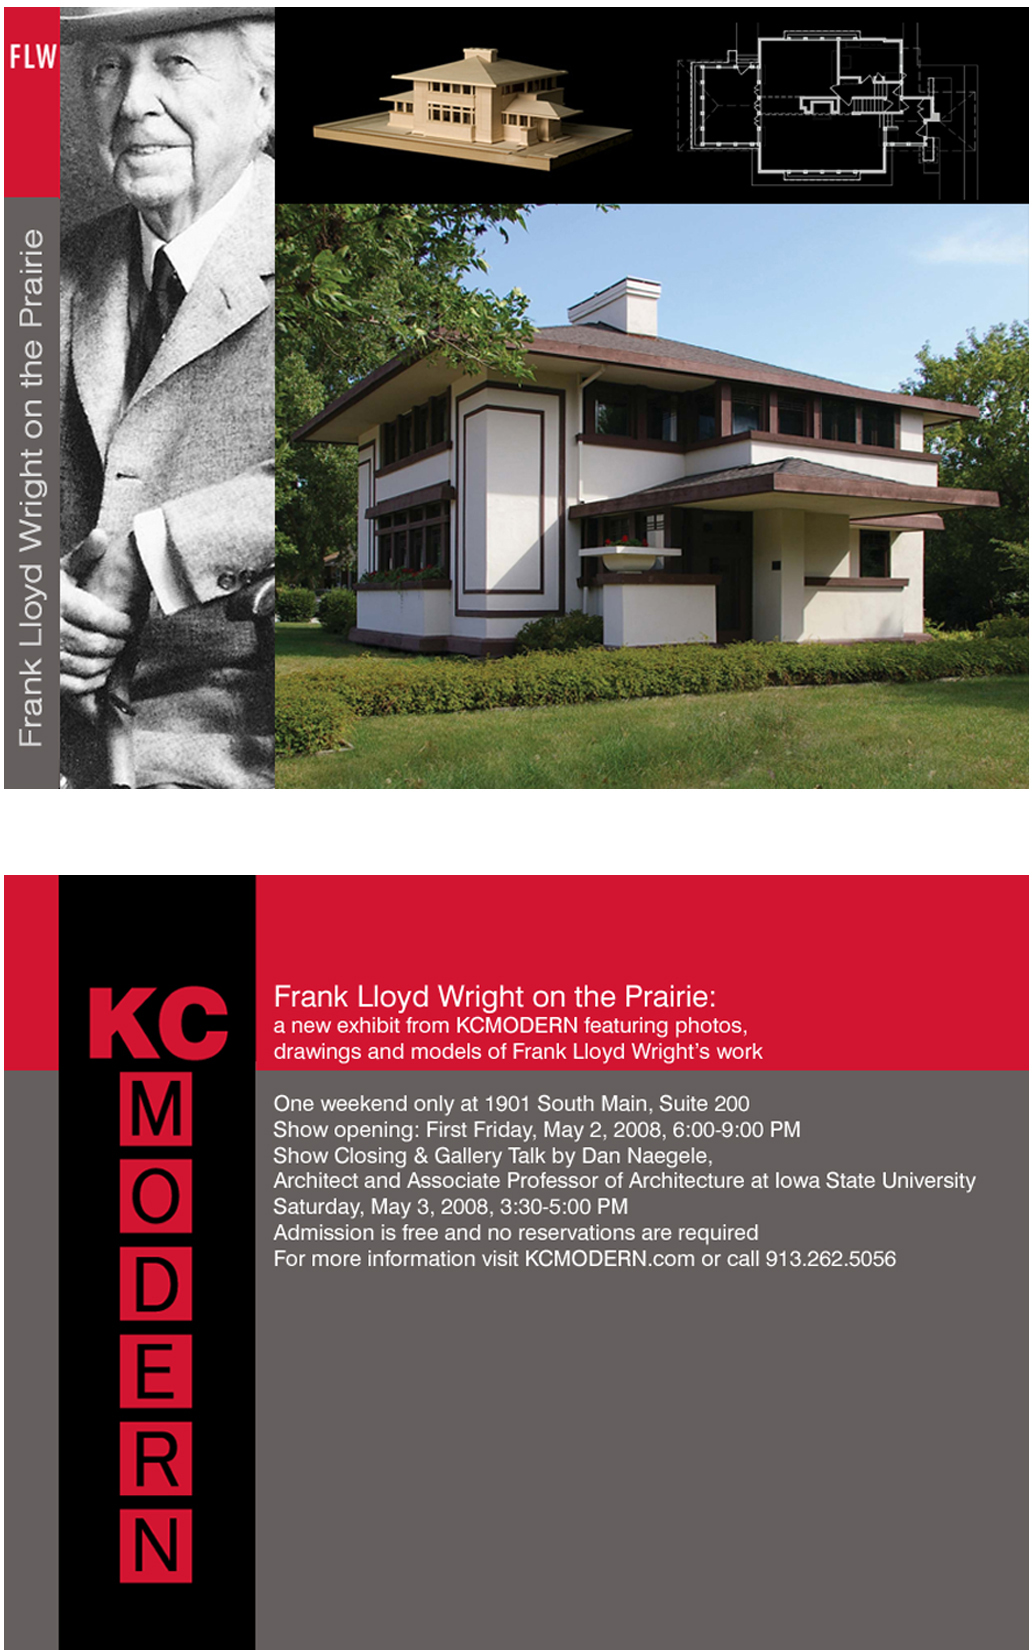 KCmodern Frank Lloyd Wright on the Prairie Invite